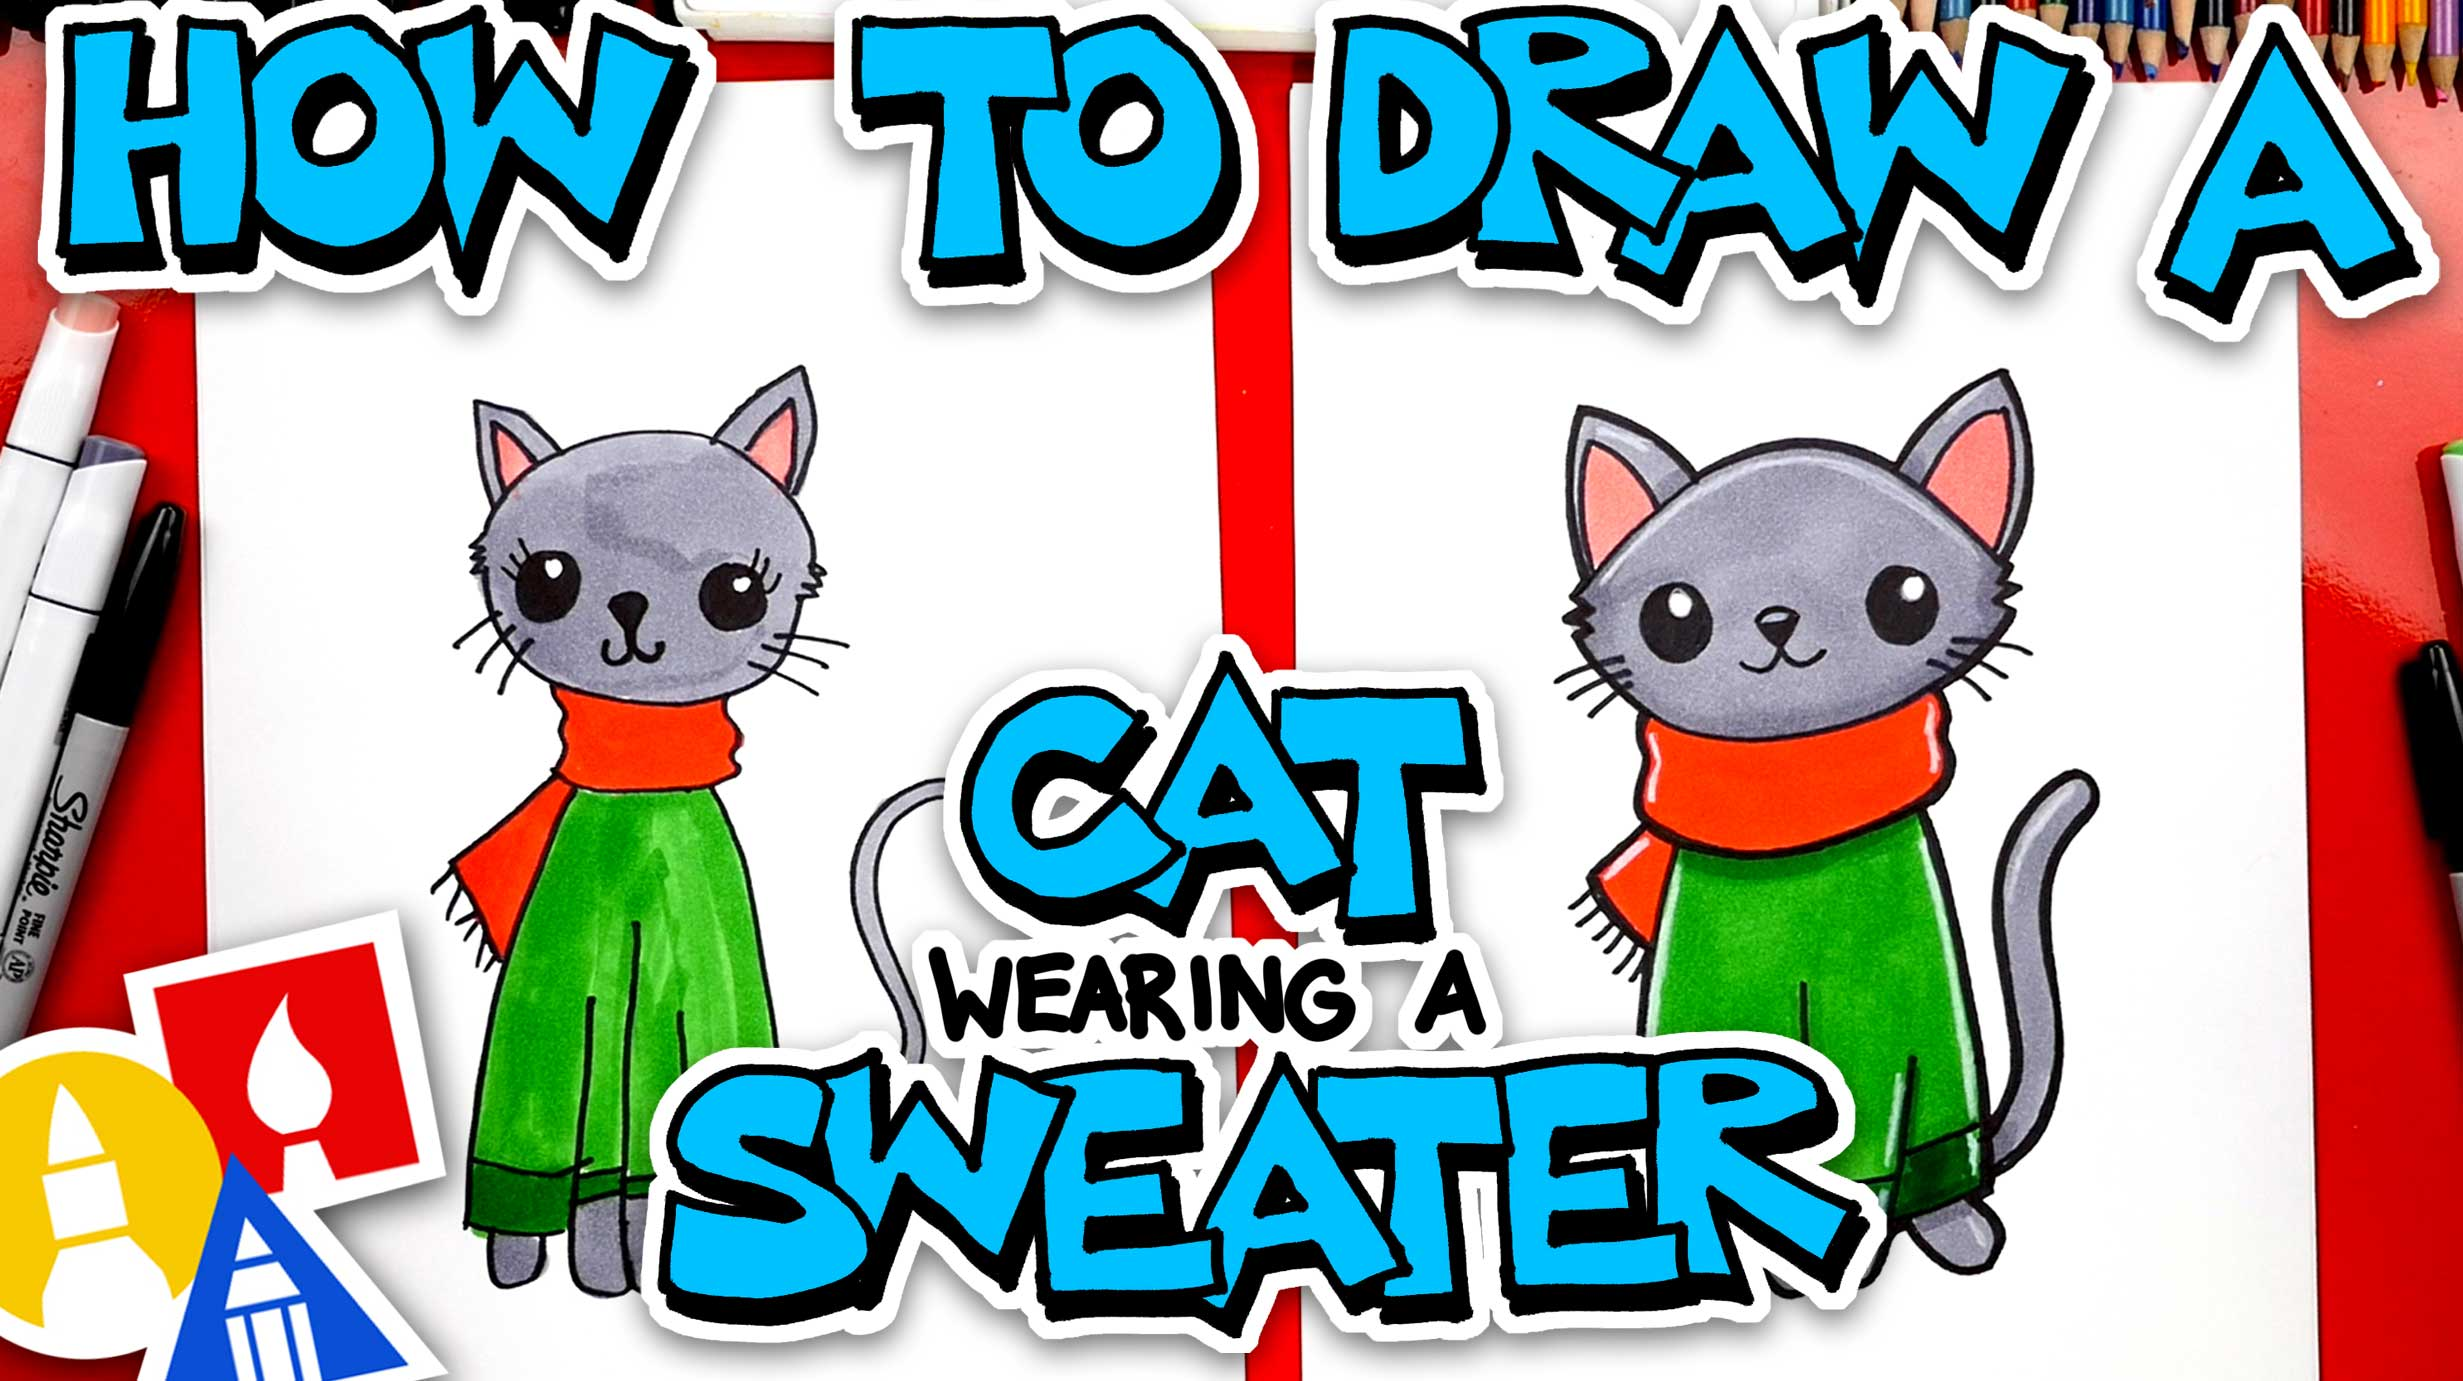 How To Draw A Christmas Cat Wearing A Sweater